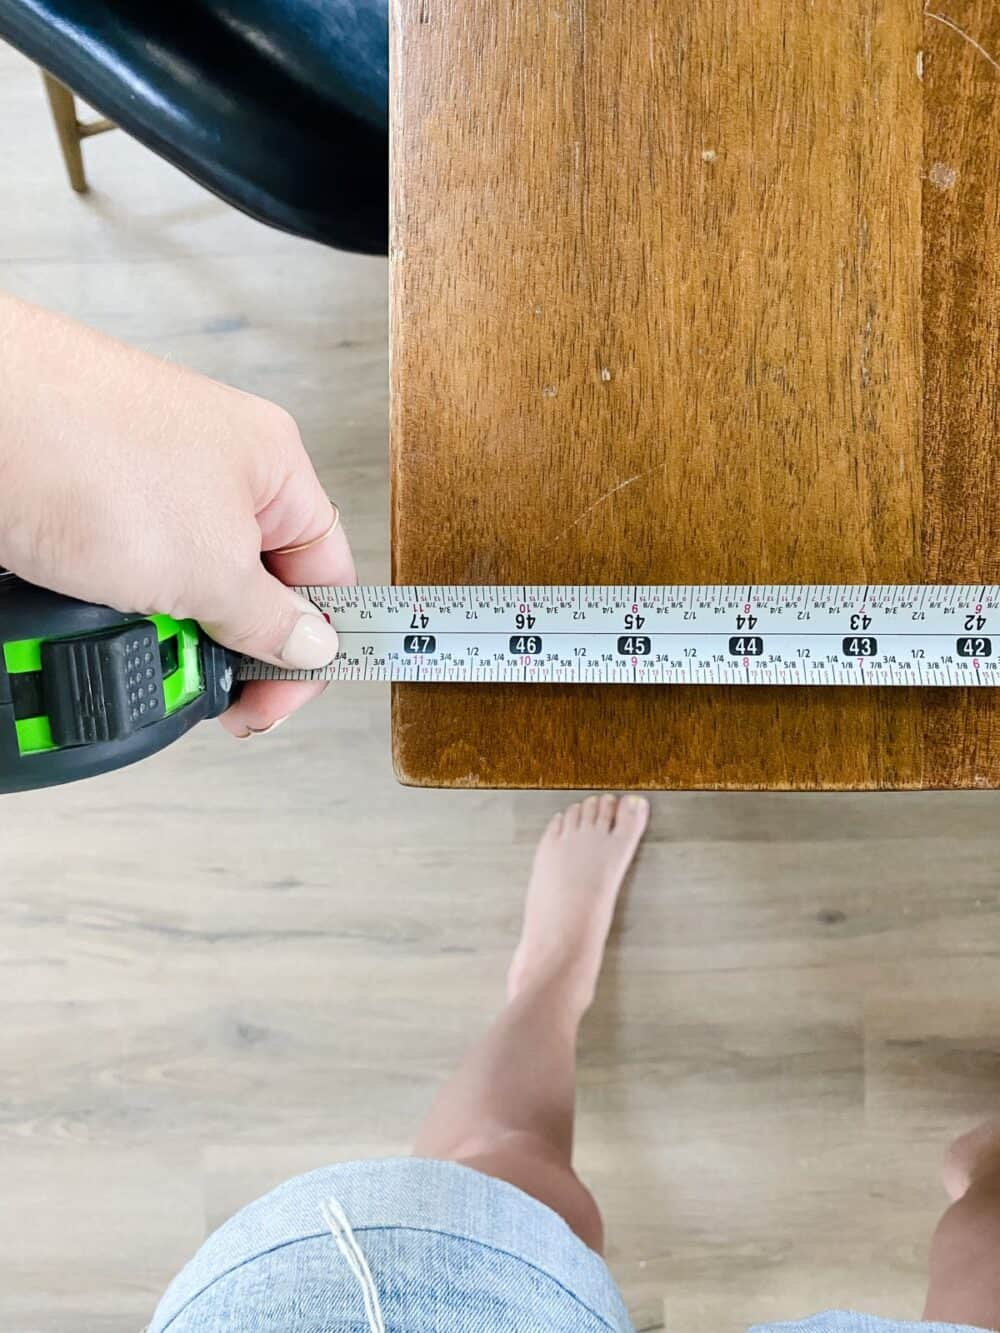 hang using a tape measure to measure a table